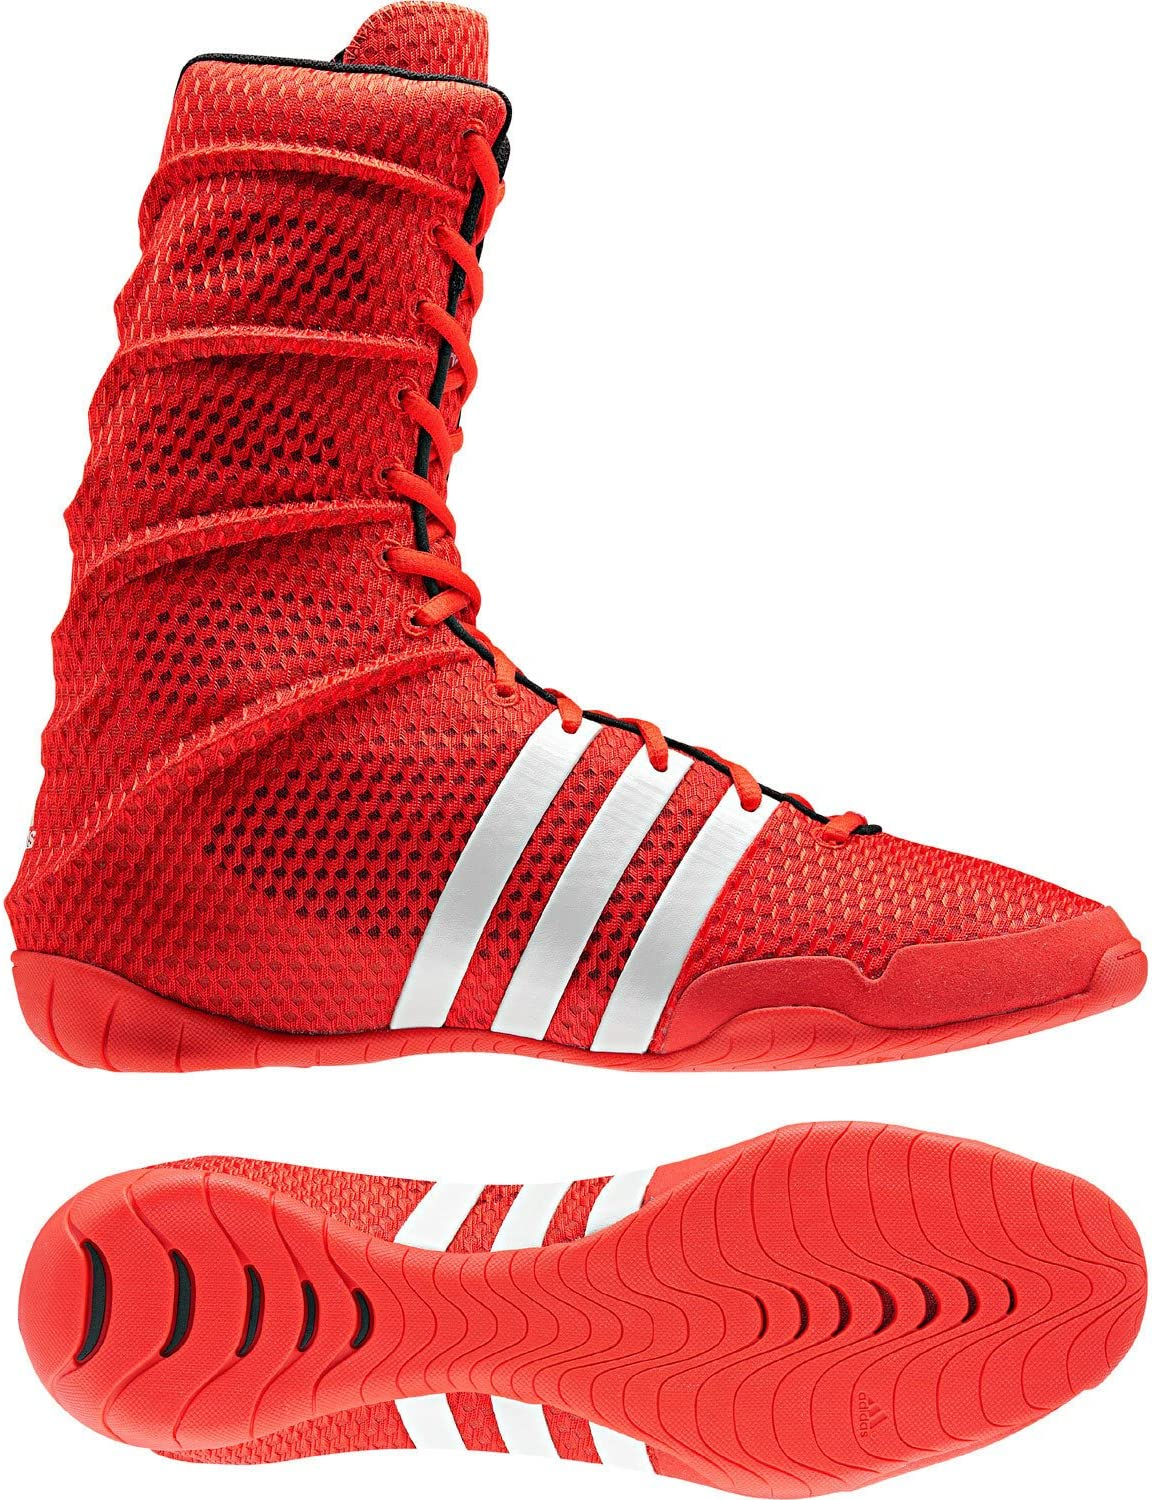 Amazon.com : adidas ADIPOWER Boxing Boots (10 US) : Boxing ...